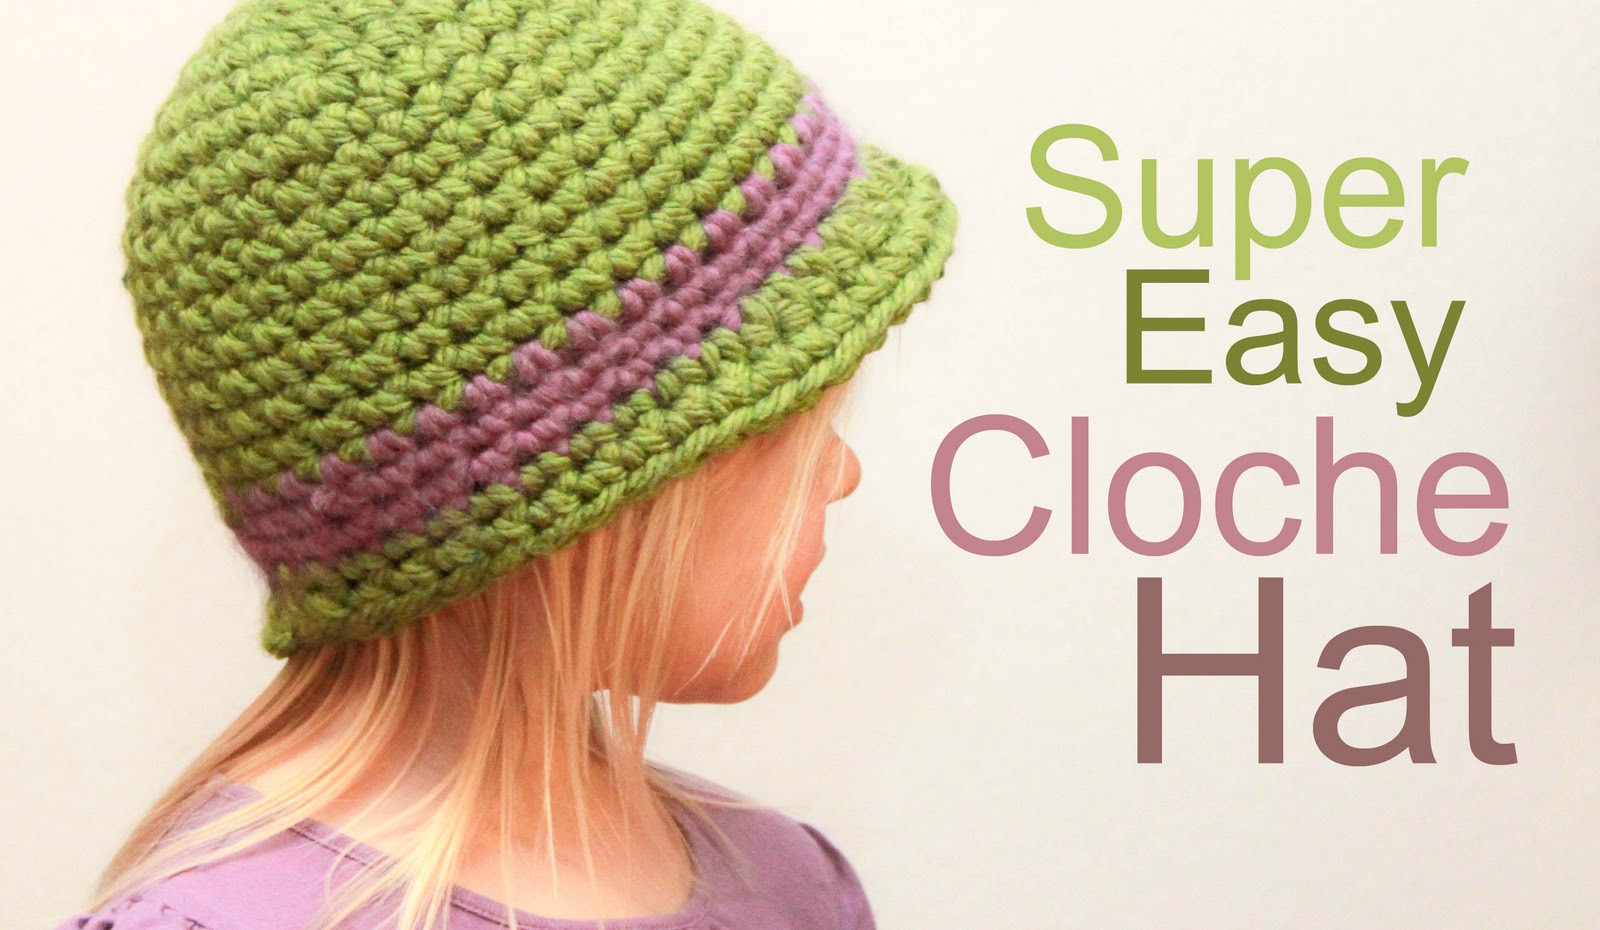 Easy Crochet Hat Patterns Inspirational Super Easy Crochet Patterns – Easy Crochet Patterns Of Innovative 46 Pictures Easy Crochet Hat Patterns